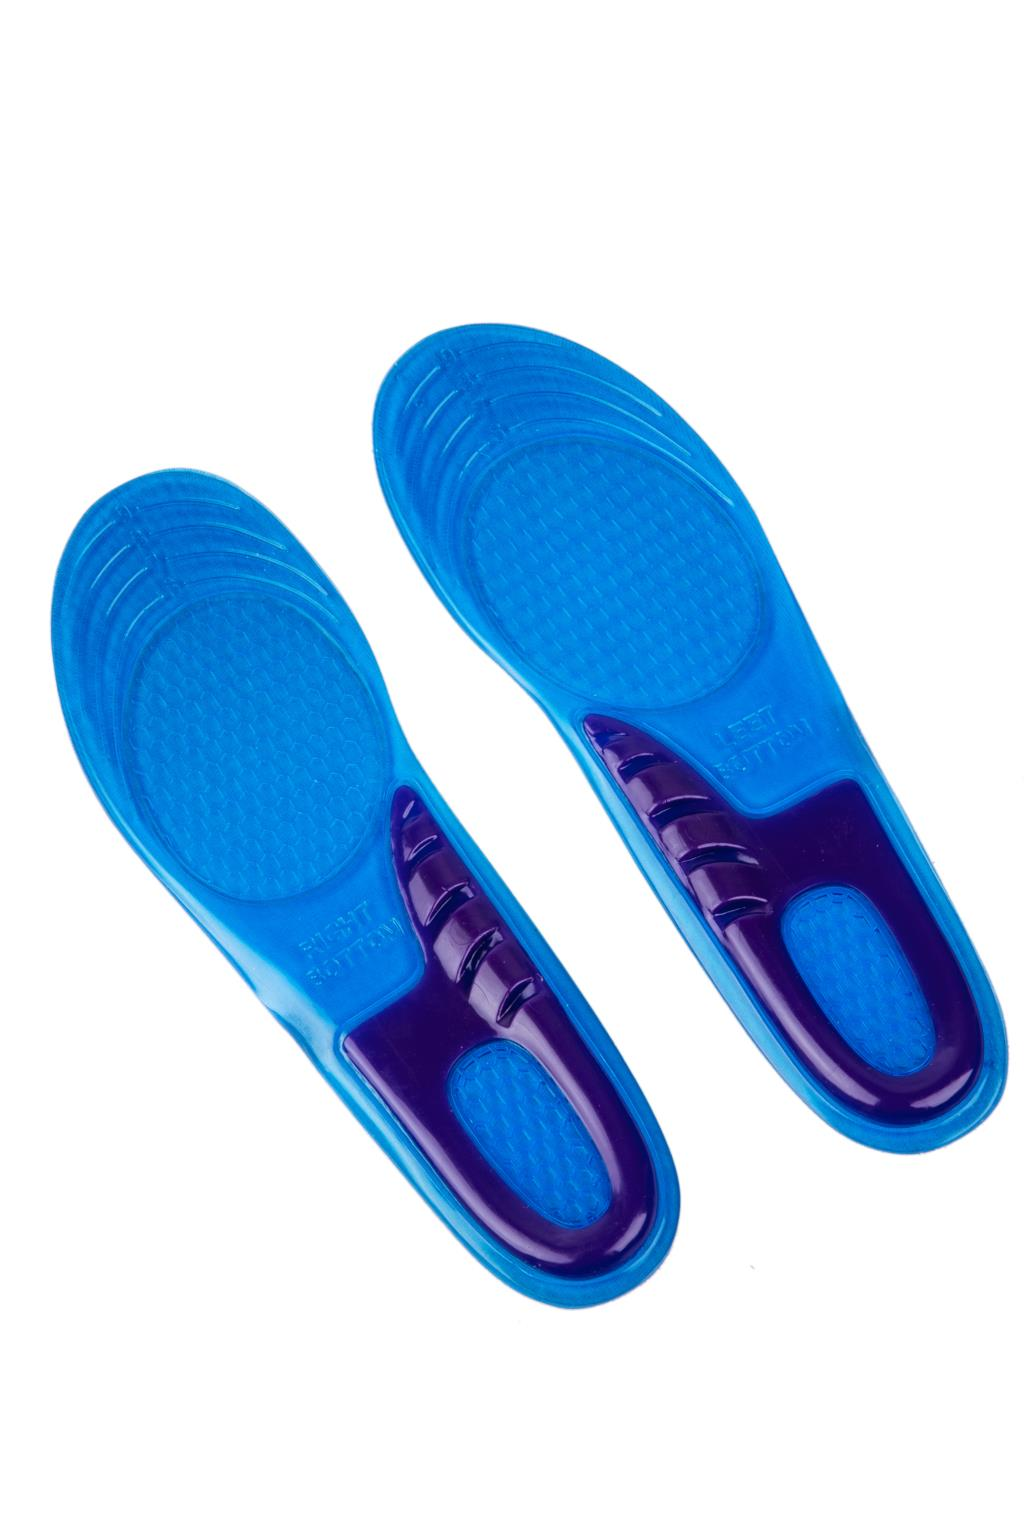 Fashion Boutique HIGH QUALITY NEW ORTHOTIC ARCH SUPPORT MASSAGING GEL INSOLES Confortable wear (sizes 6-9)